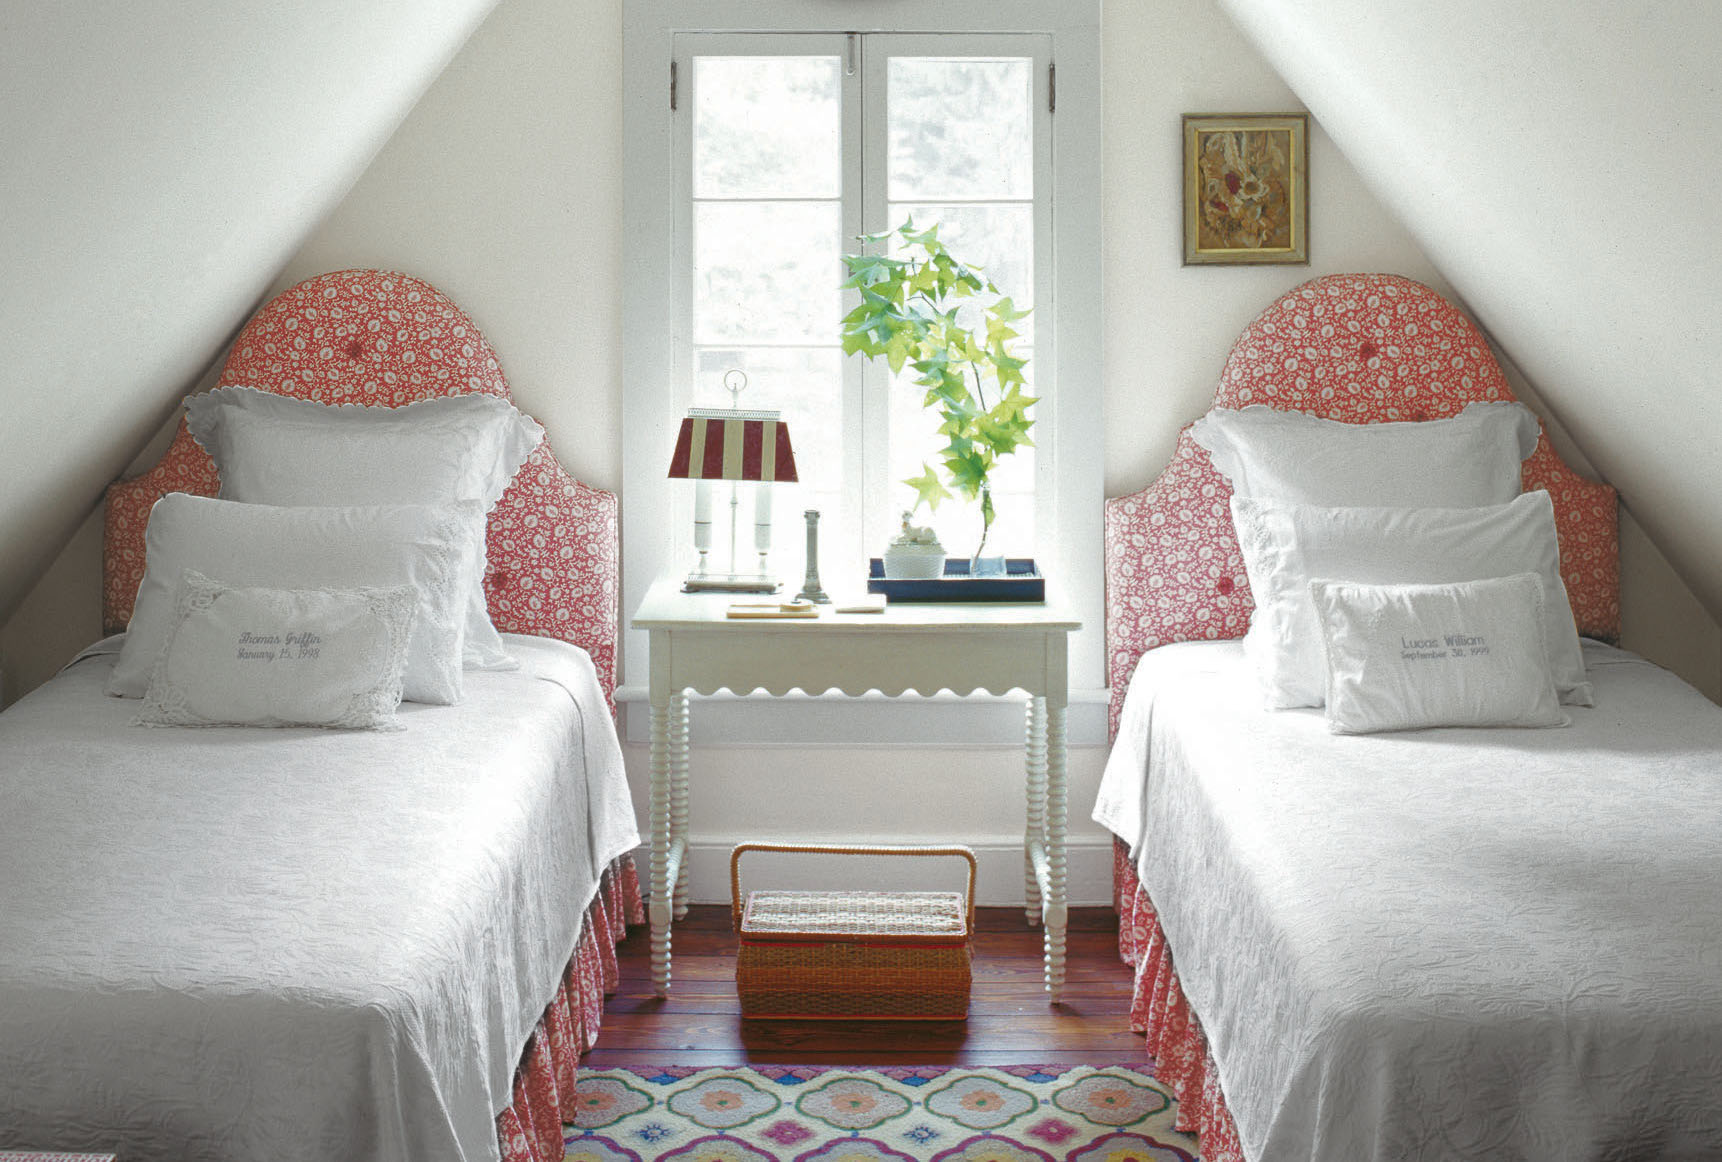 Small Room Decorating: 20 Small Bedroom Design Ideas -Decorating Tips For Small